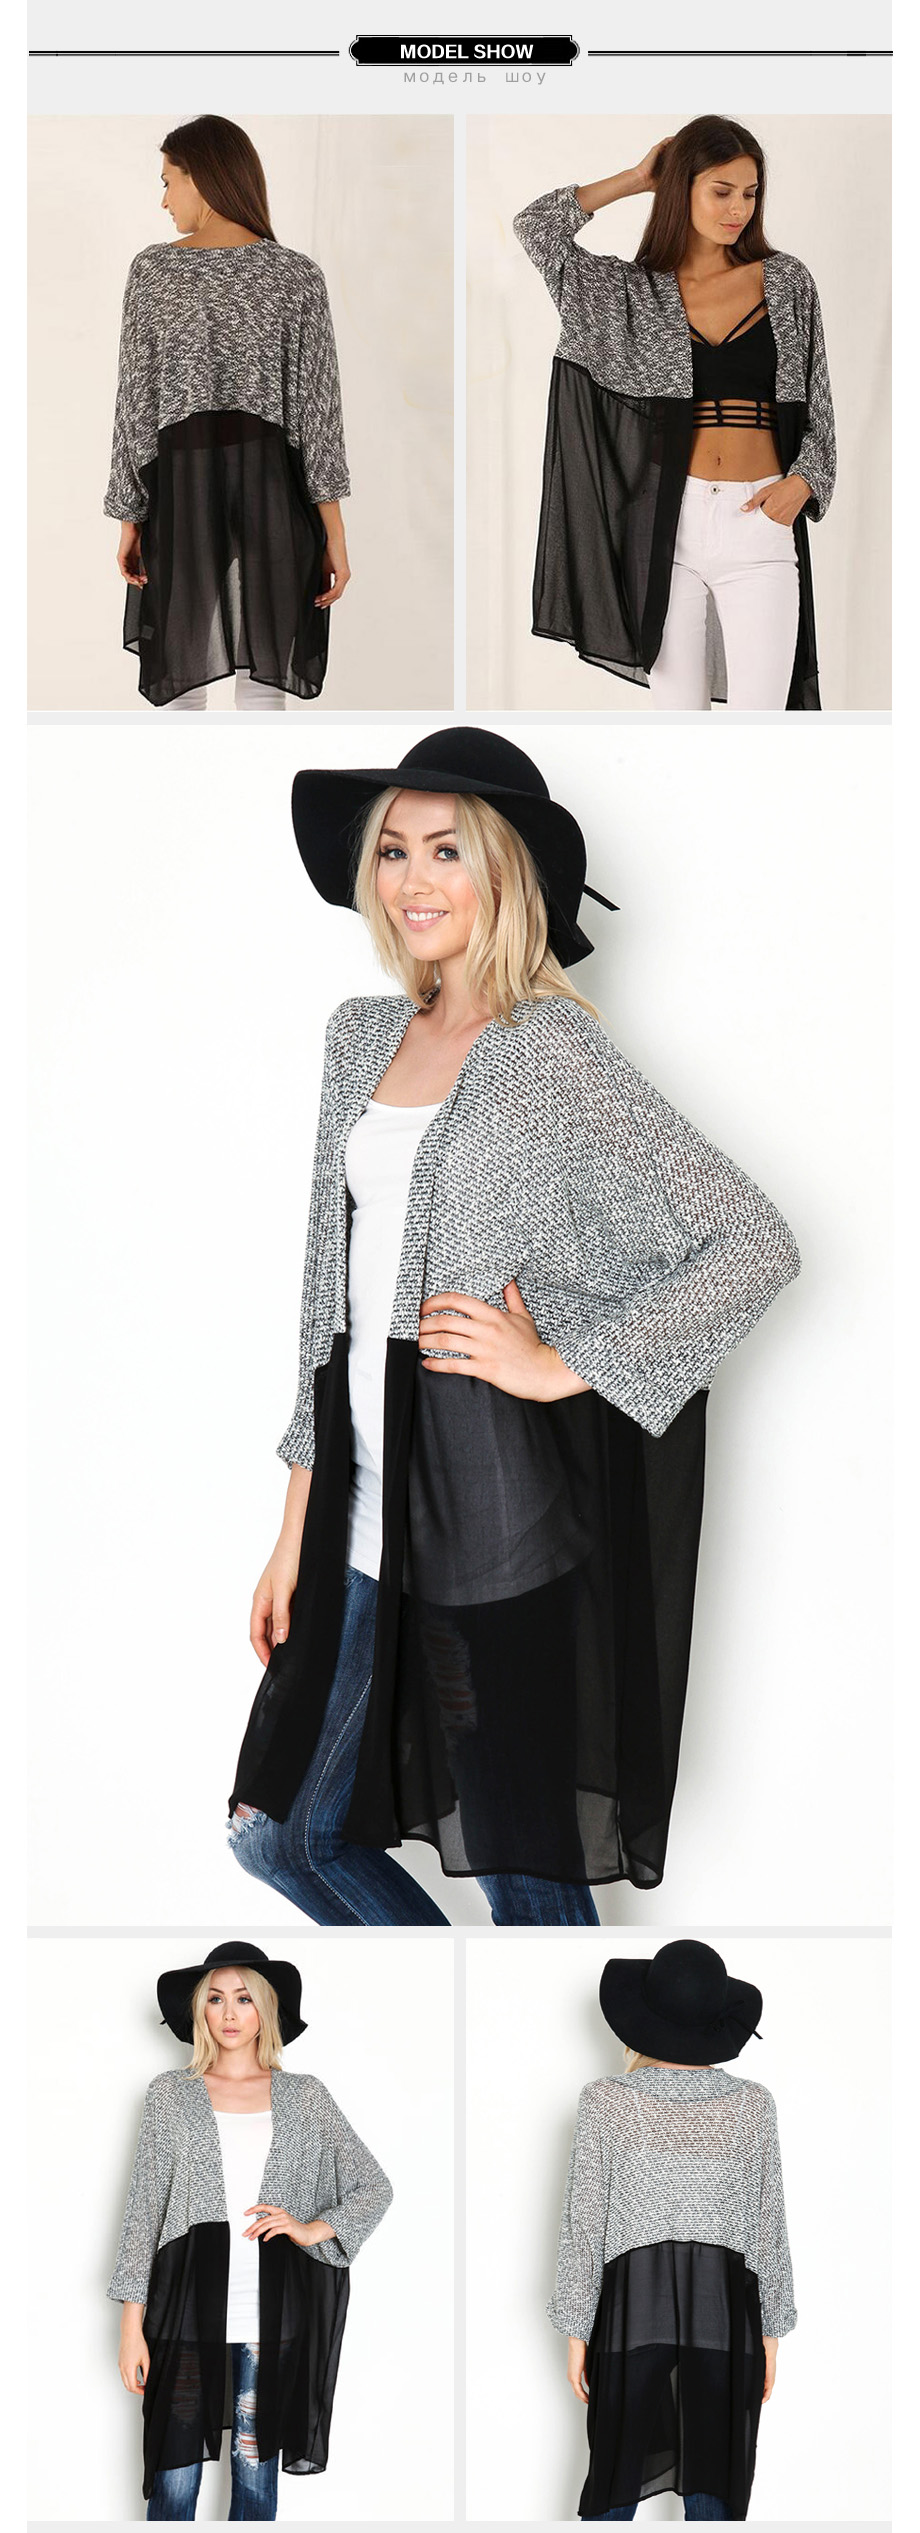 Long Casual Knitted Chiffon Kimono Cardigan Blouse Plus Size